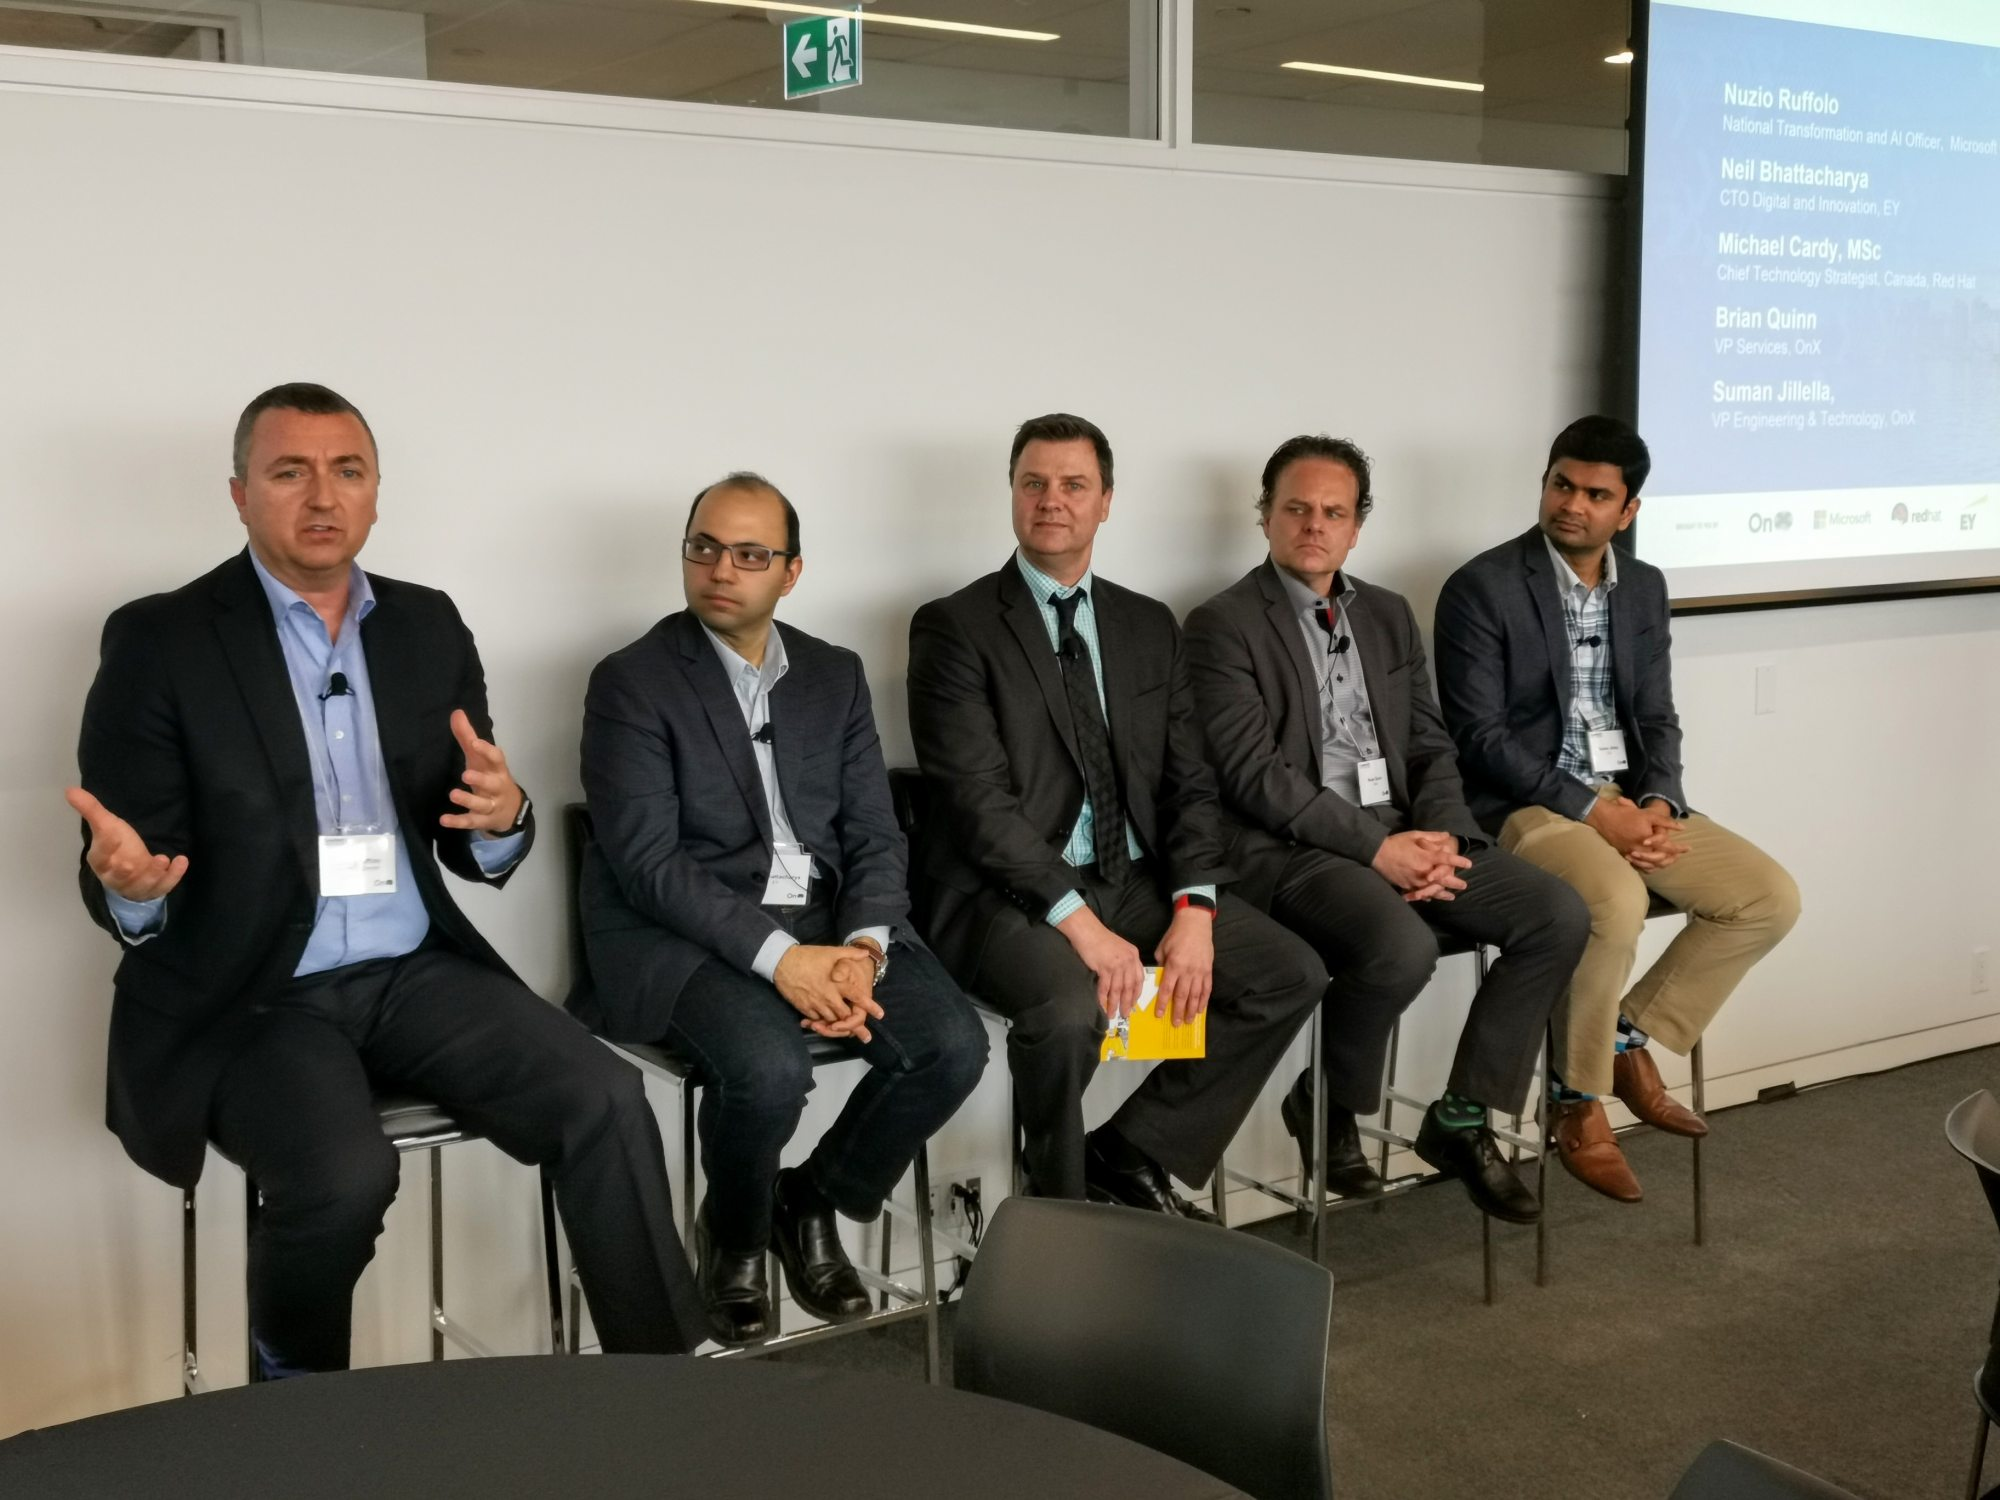 From left to right: Nuzio Ruffolo of Microsoft Canada, Neil Bhattacharya of EY, Michael Cardy of Red Hat, Brian Quinn of OnX, and Suman Jillella of OnX.